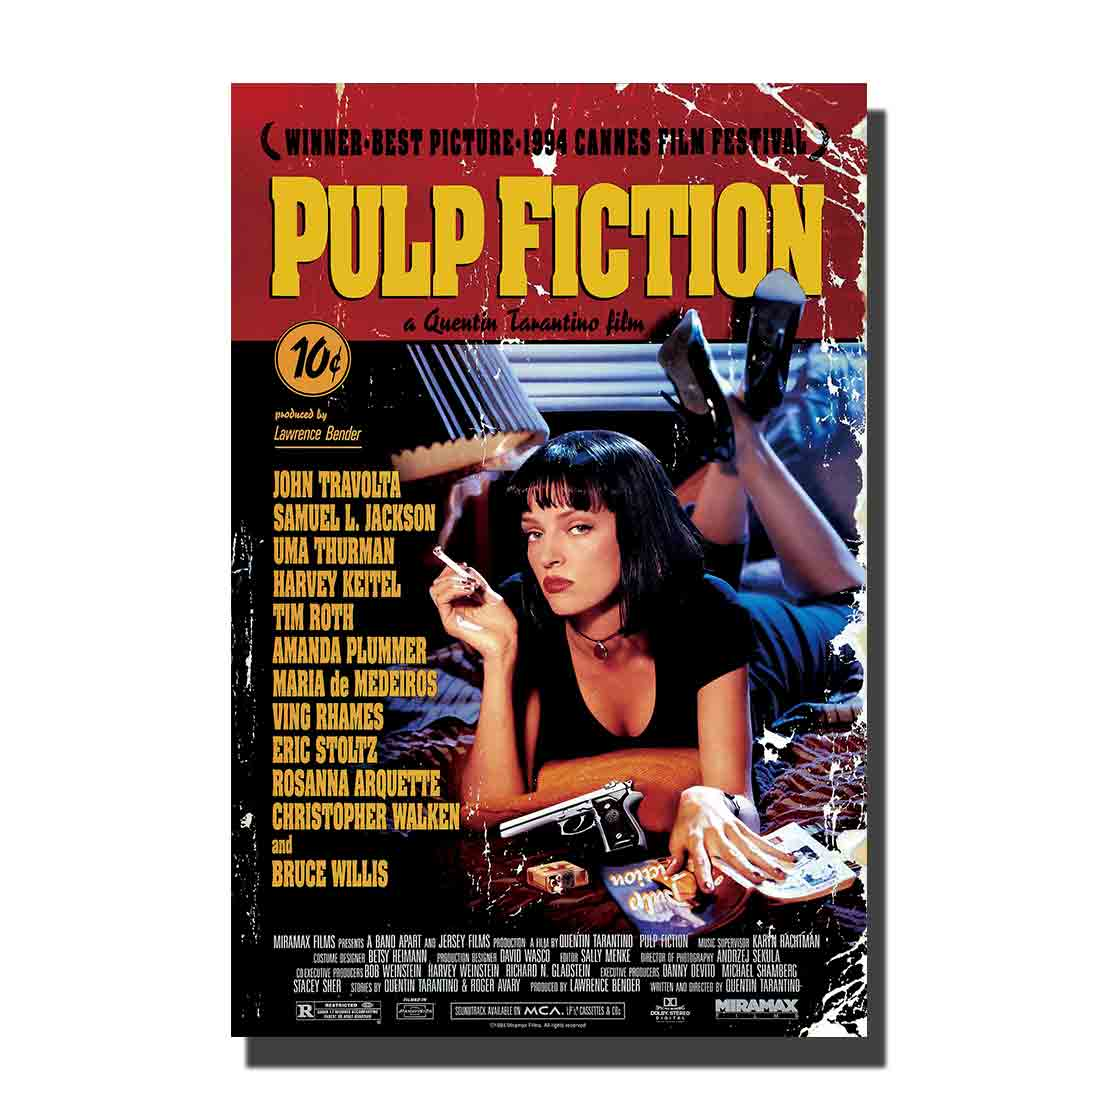 P PULP FICTION Movie Quentin Tarantino Bruce Willis Poster custom Home Wall decor 8x1212x18 24x36canvas living roomdecoration image